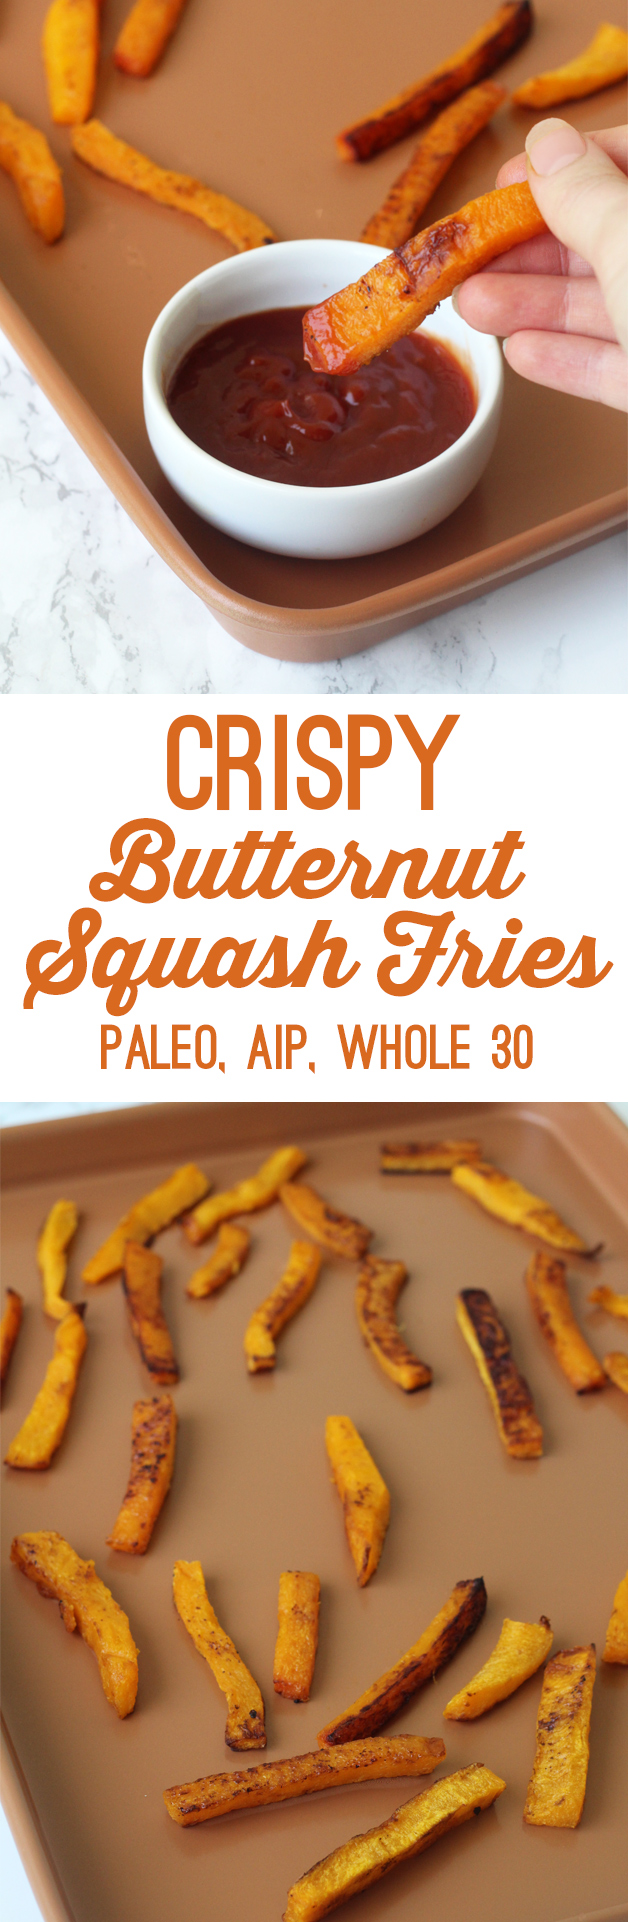 Crispy Butternut Squash Fries (Paleo, Whole 30, AIP)